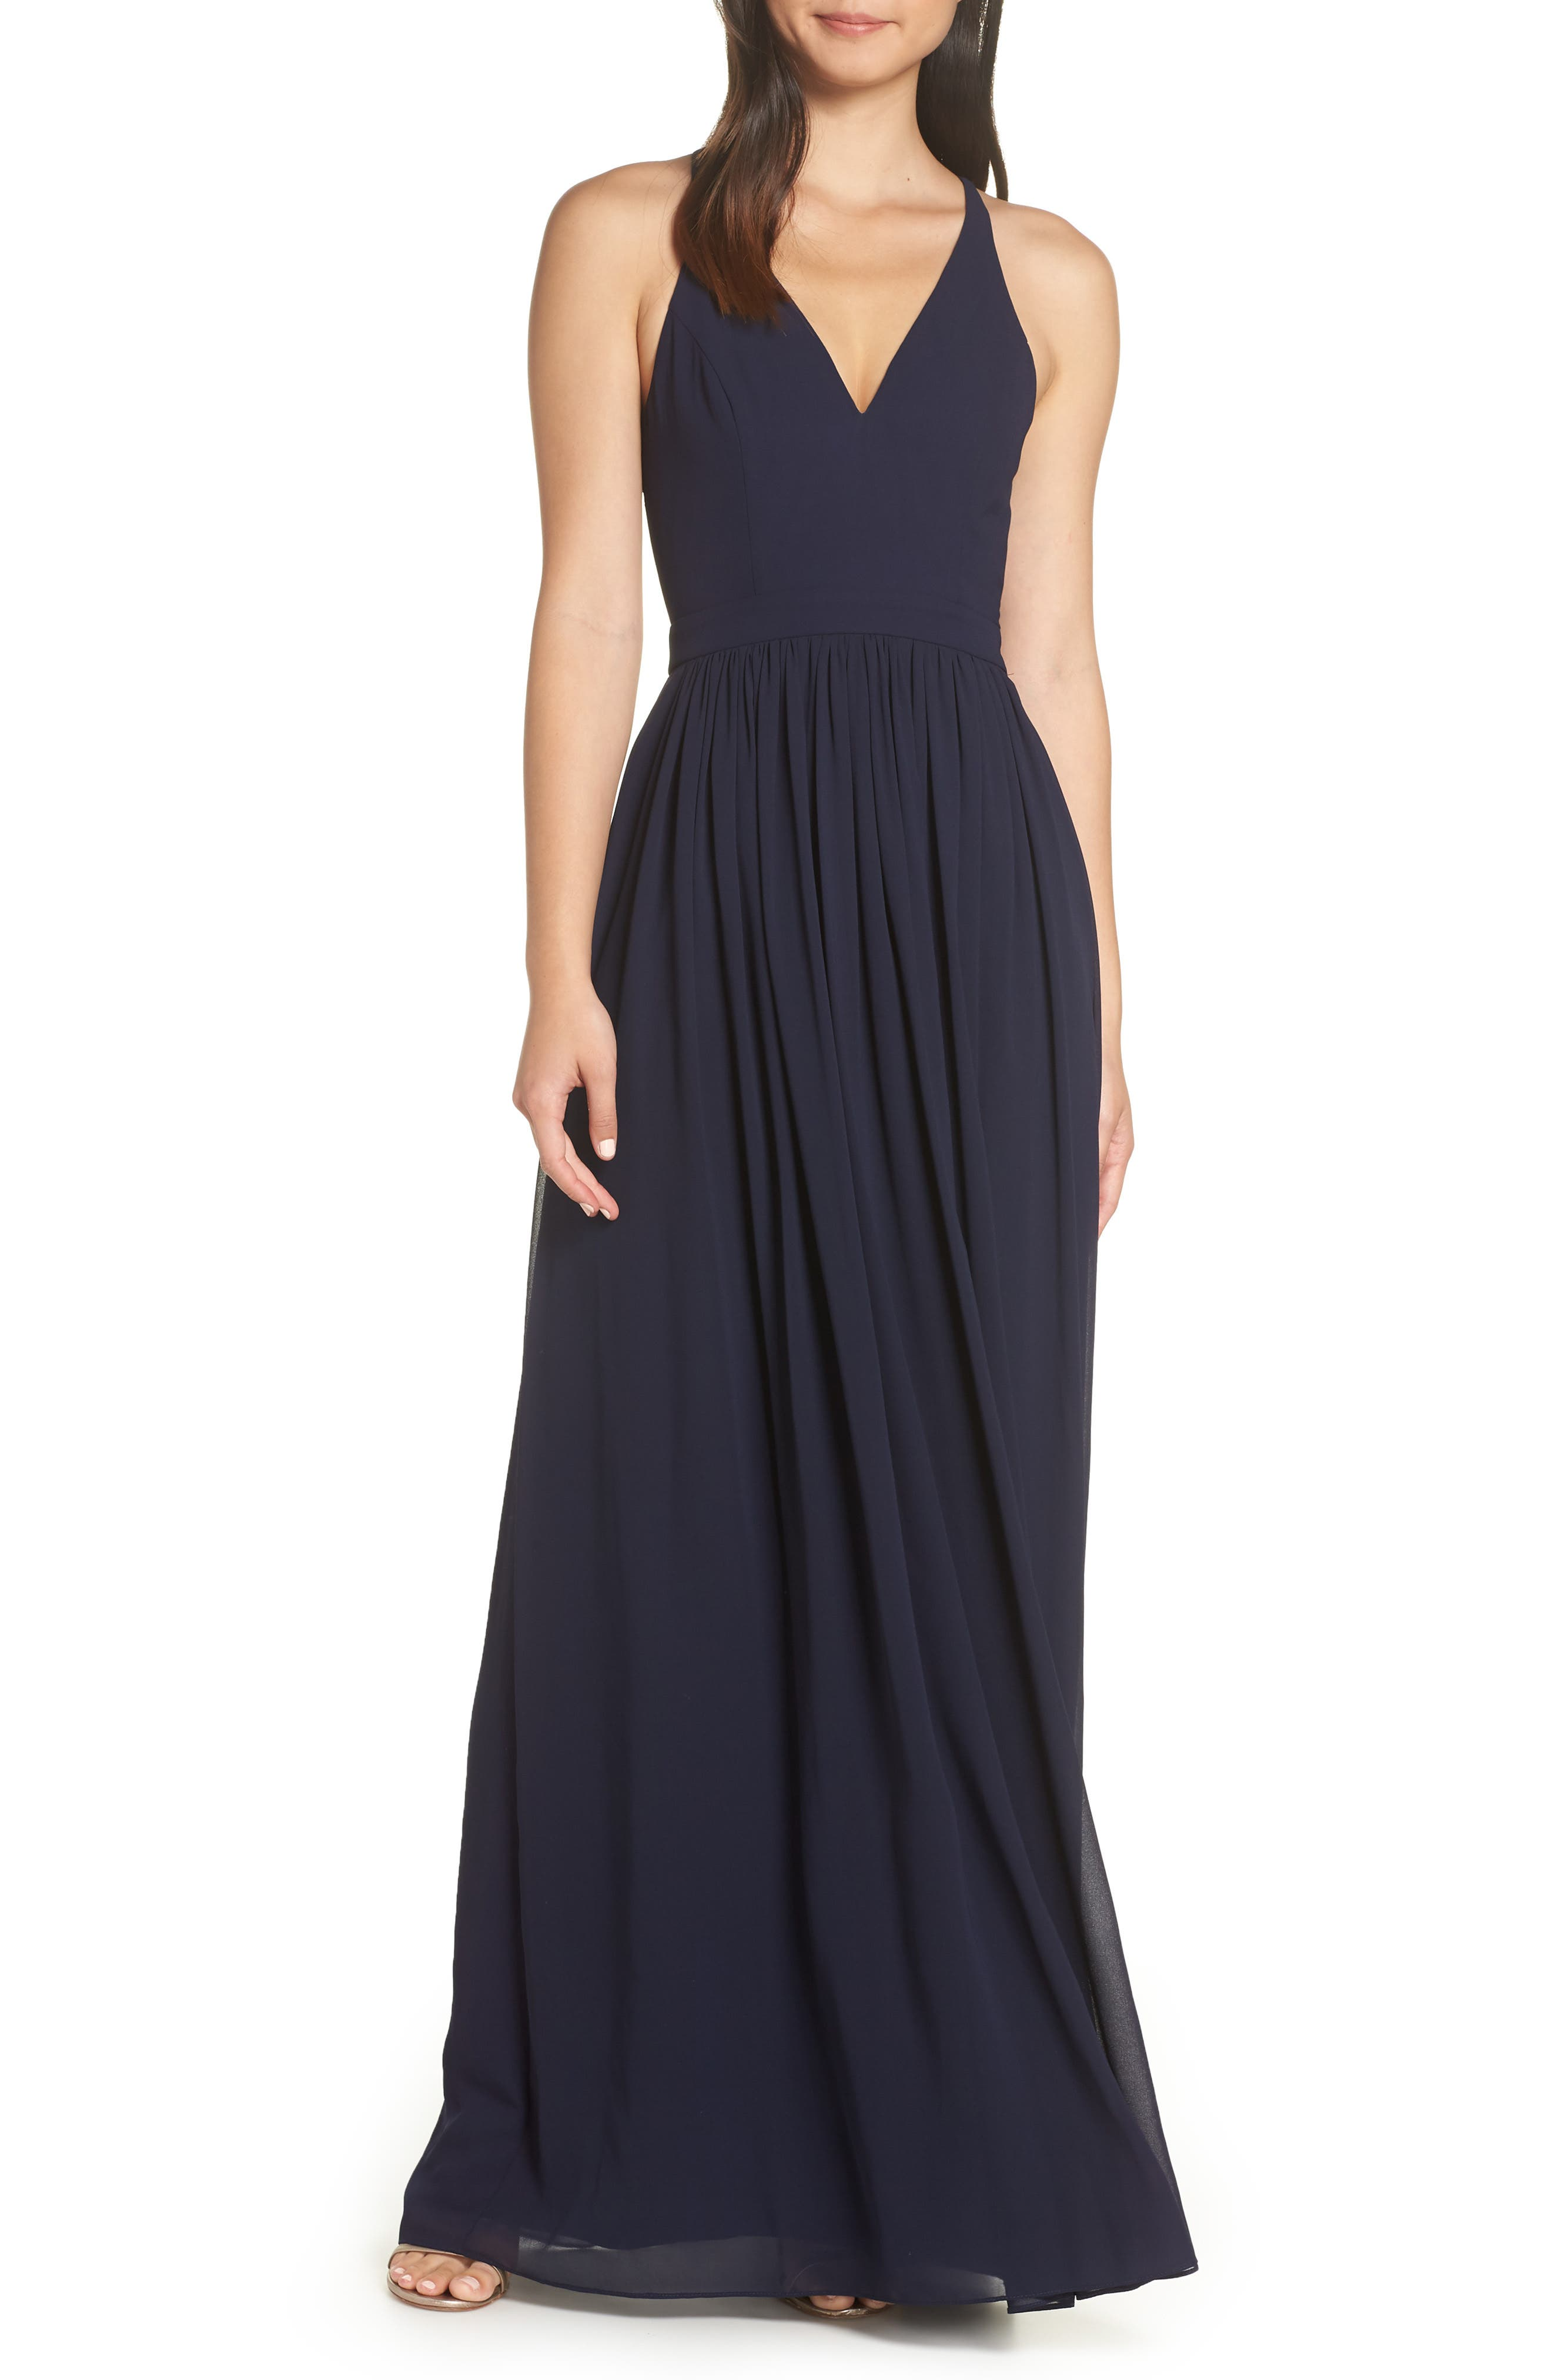 Lulus Everlasting Beauty Lace Back Chiffon Gown, Blue